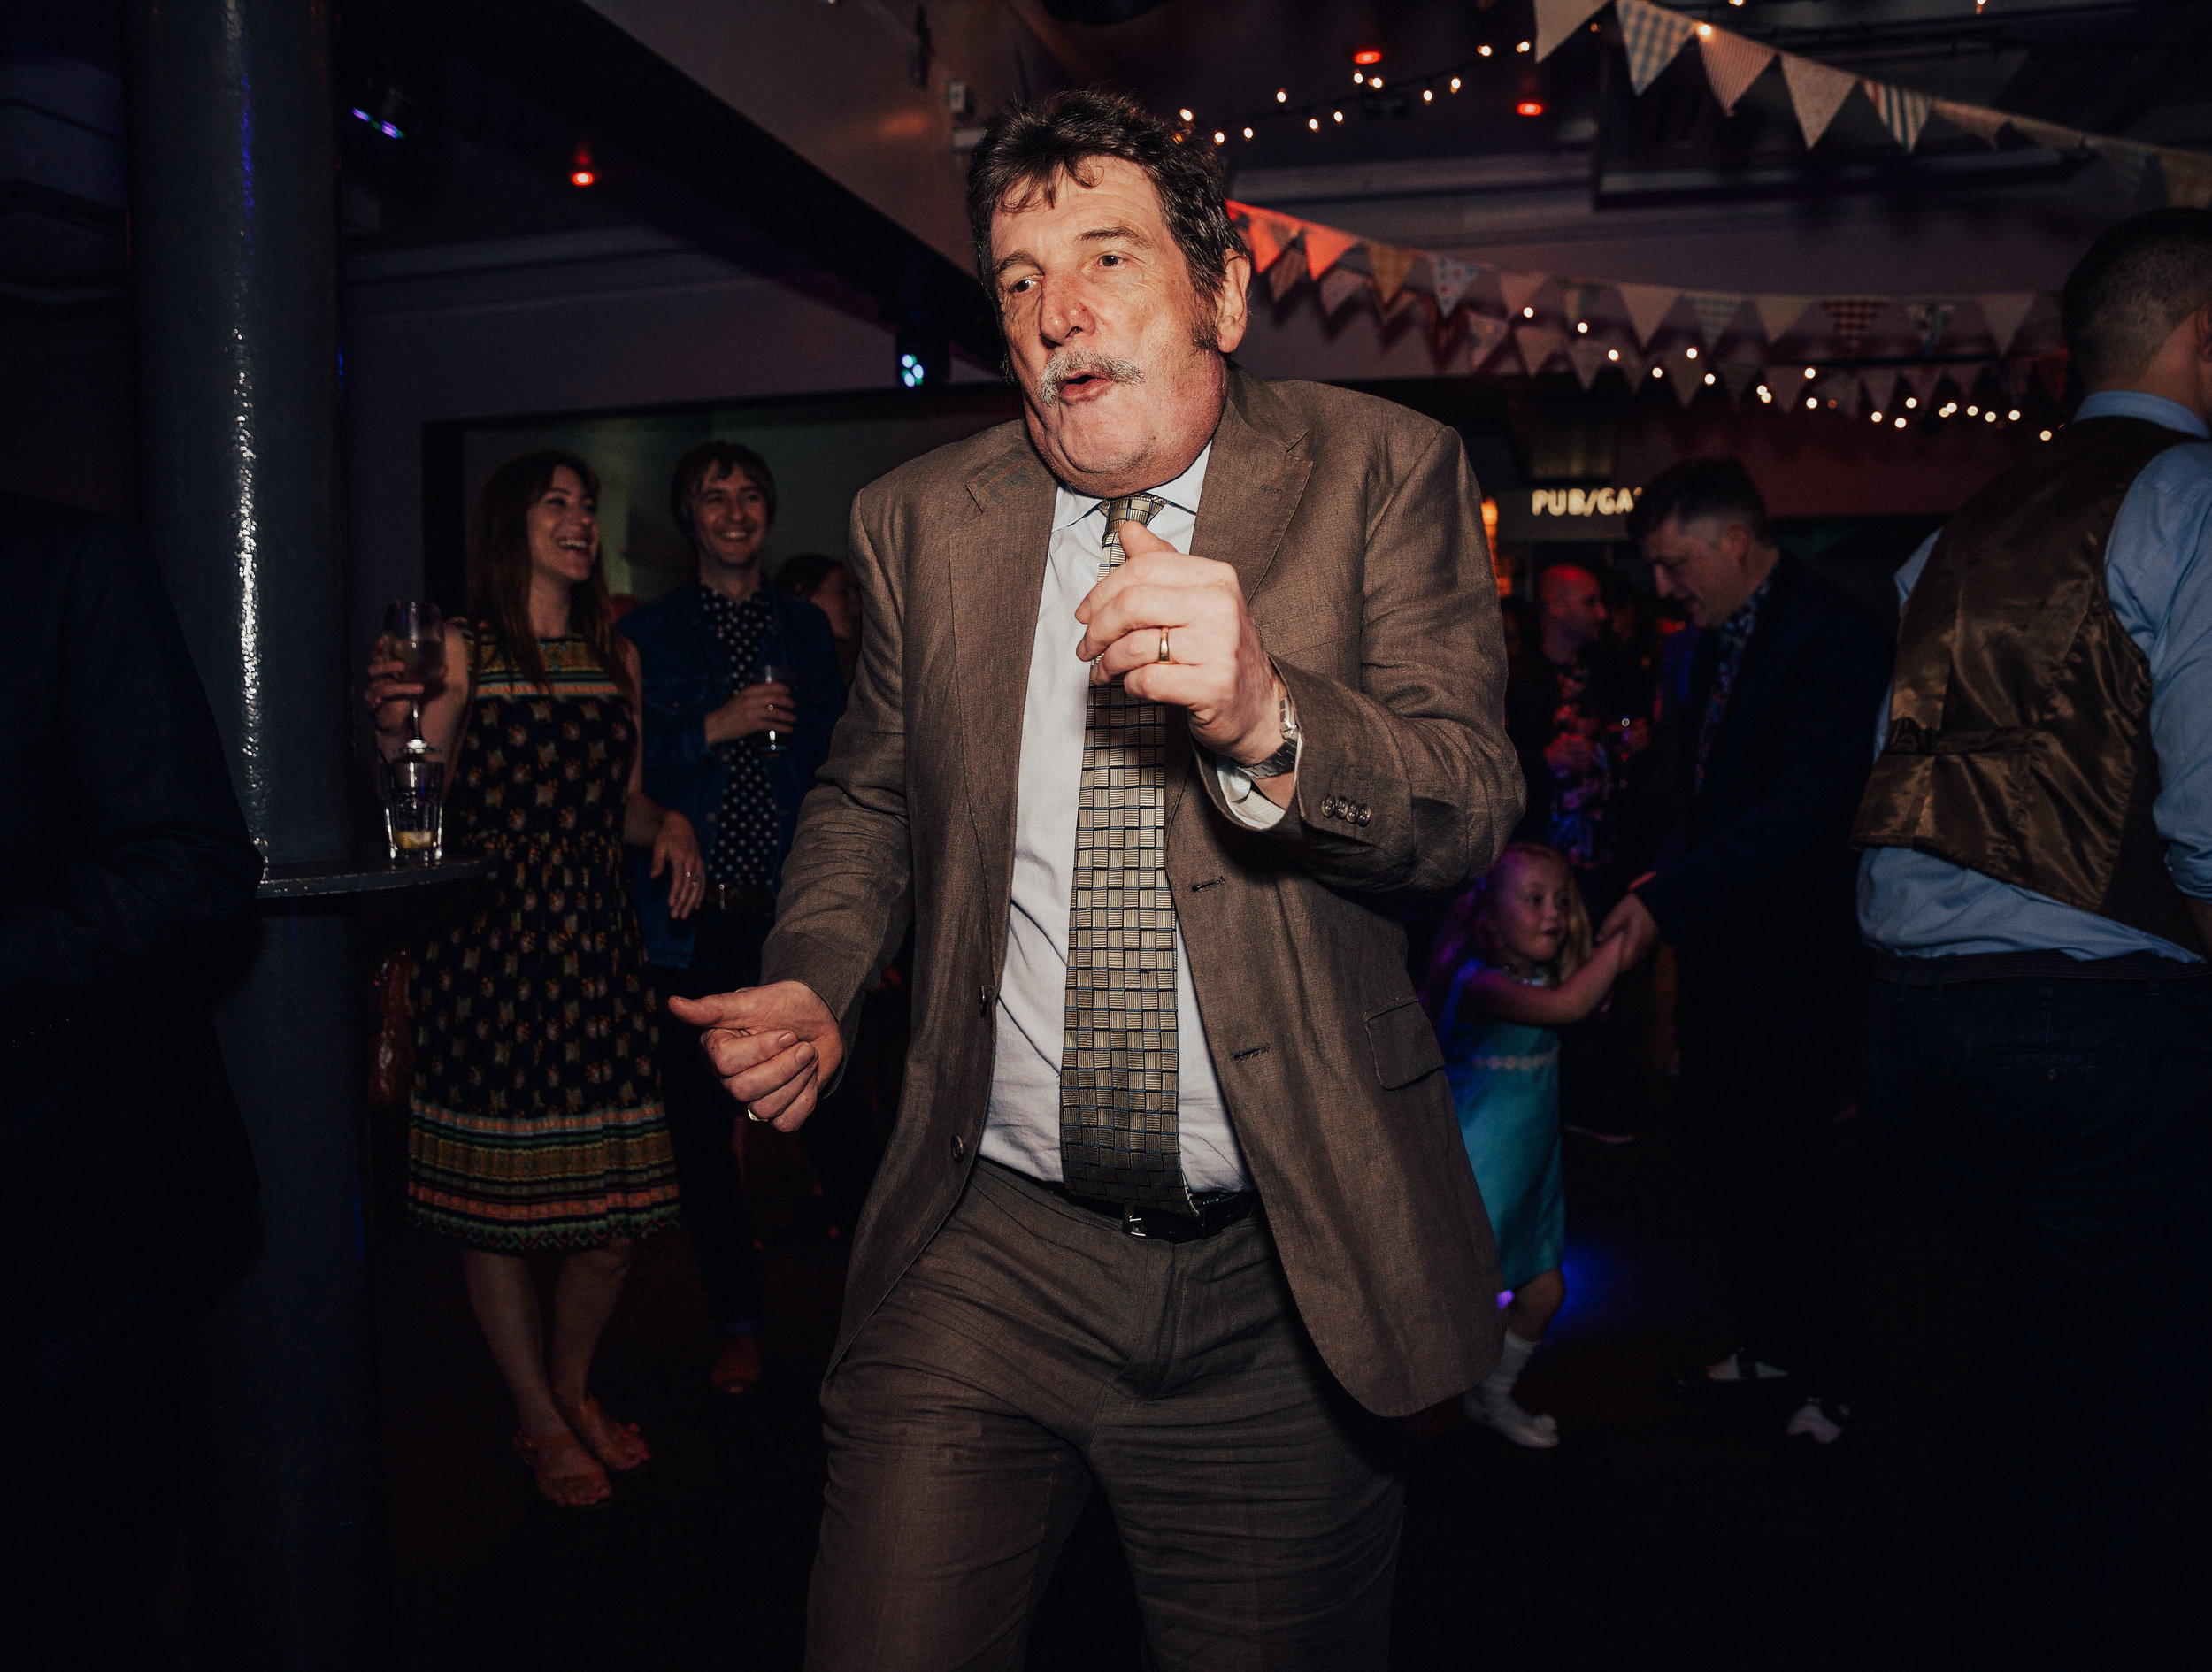 ALTERNATIVE_WEDDING_PHOTOGRAPHY_LEEDS_UK_PJ_PHILLIPS_PHOTOGRAPHY_161.jpg